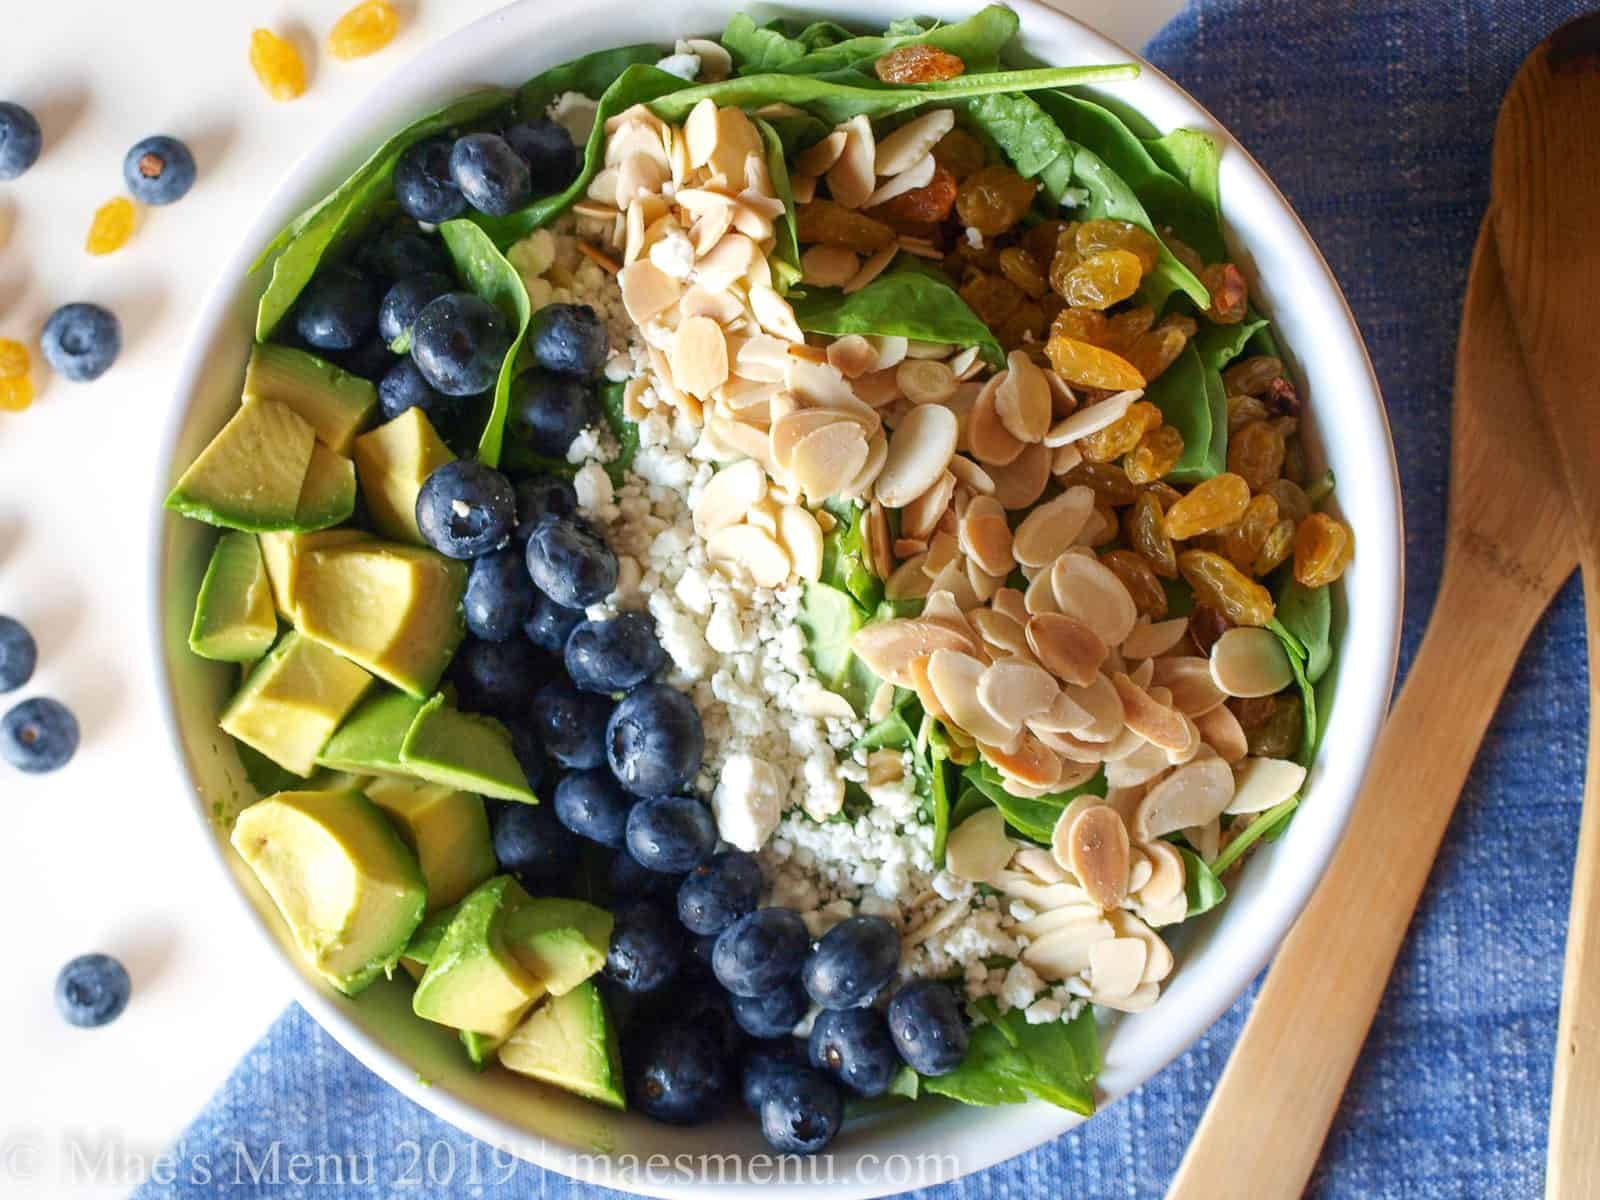 A large white bowl of Blueberry & Avocado Spinach Salad.